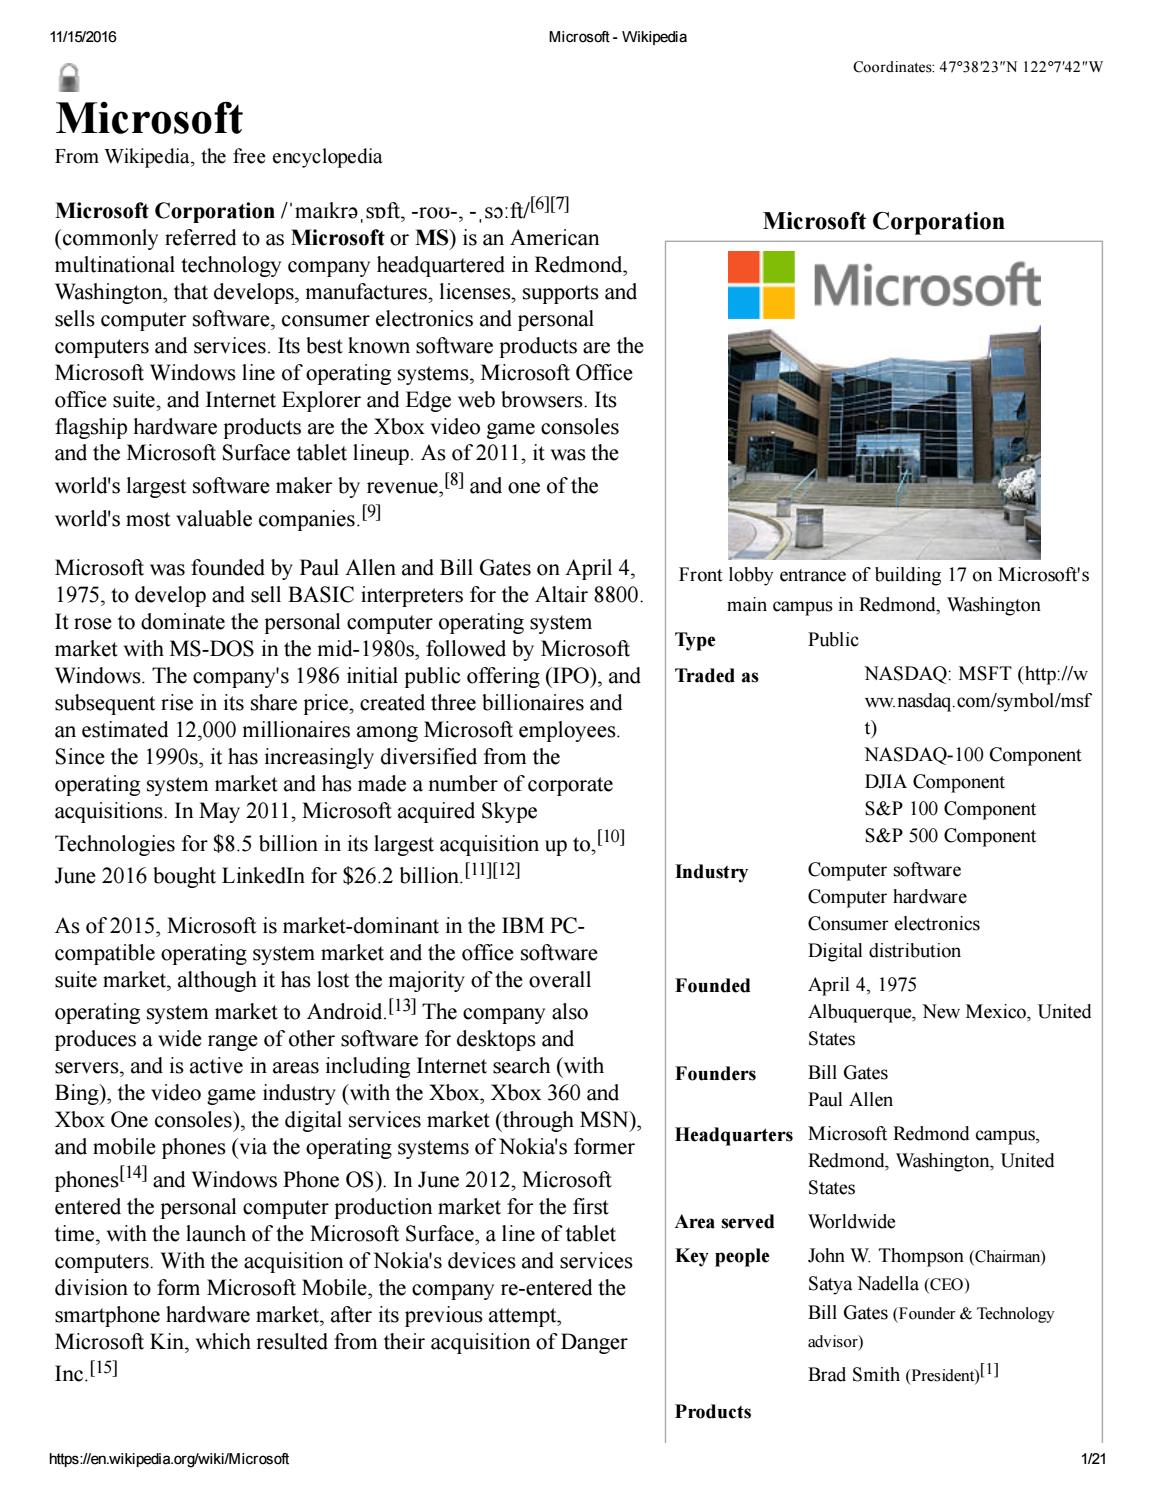 Microsoft was founded by paul allen and bill gates on april 4 microsoft was founded by paul allen and bill gates on april 4 1975 to develop and sell basic i by johnny12 issuu 1betcityfo Image collections